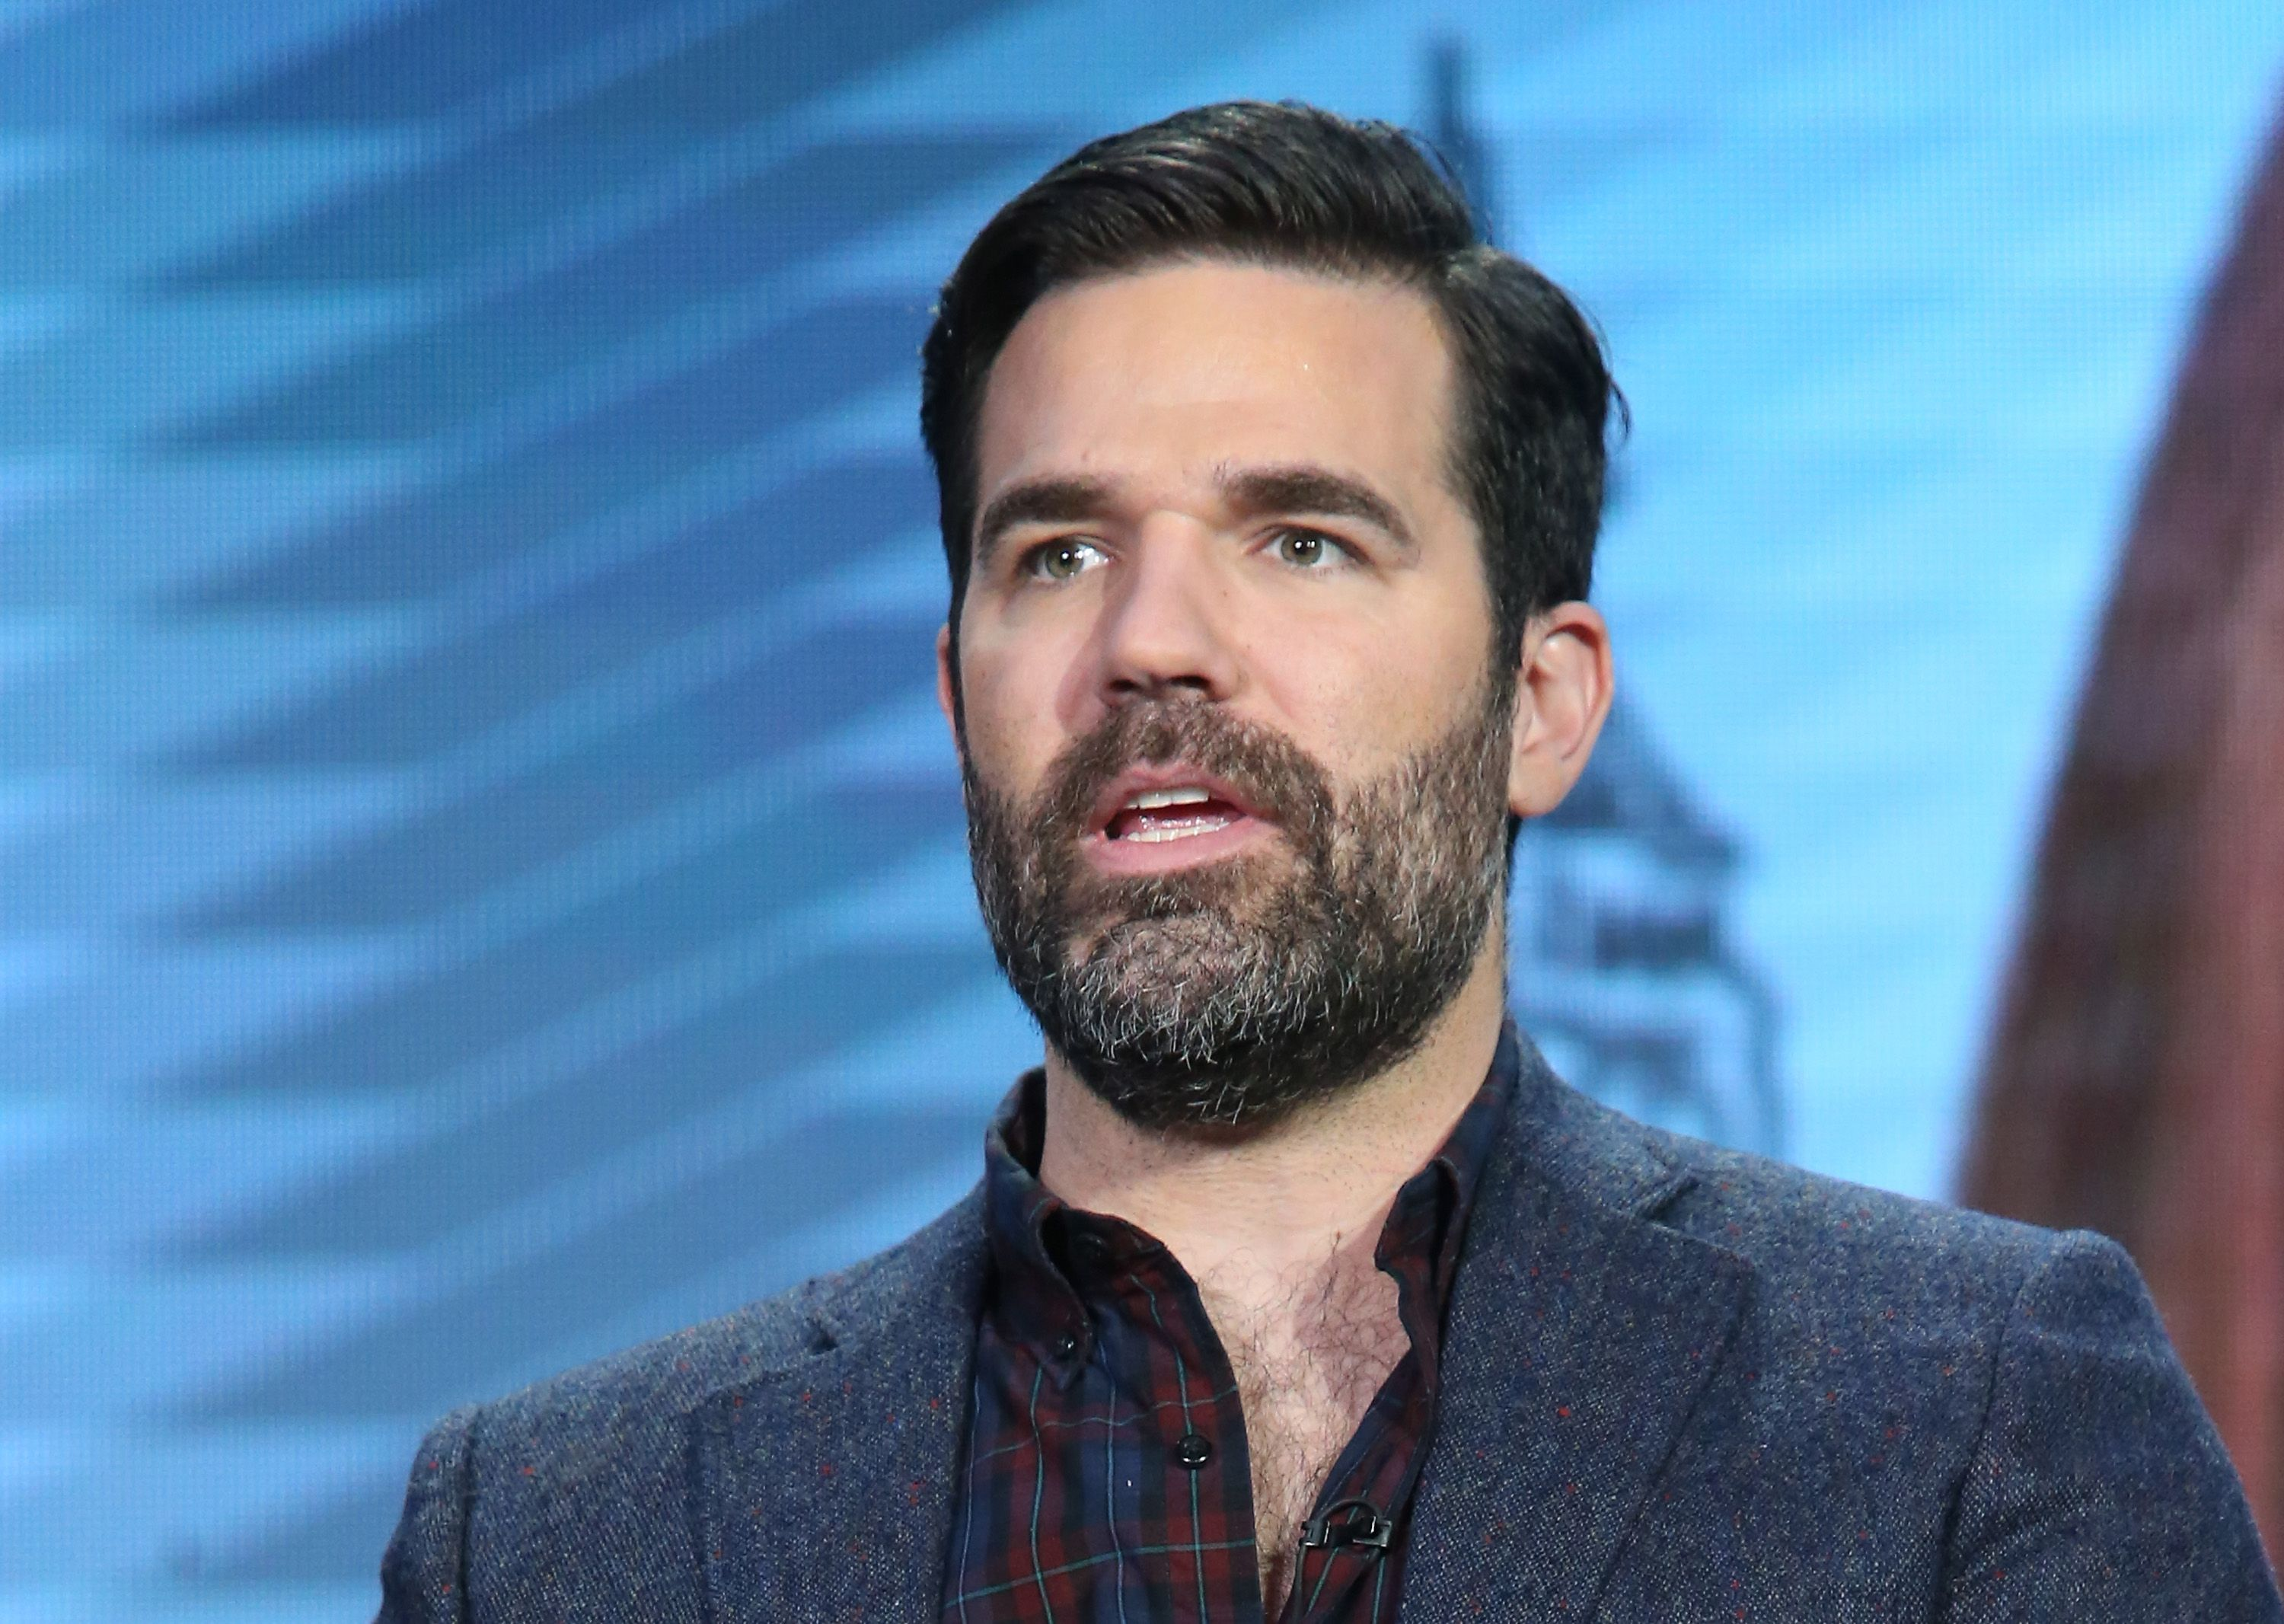 Rob Delaney speaks onstage during the Catastrophe panel as part of the Amazon portion of the 2016 Television Critics Association Winter Tour at Langham Hotel on January 11, 2016 in Pasadena, California. | Source: Getty Images